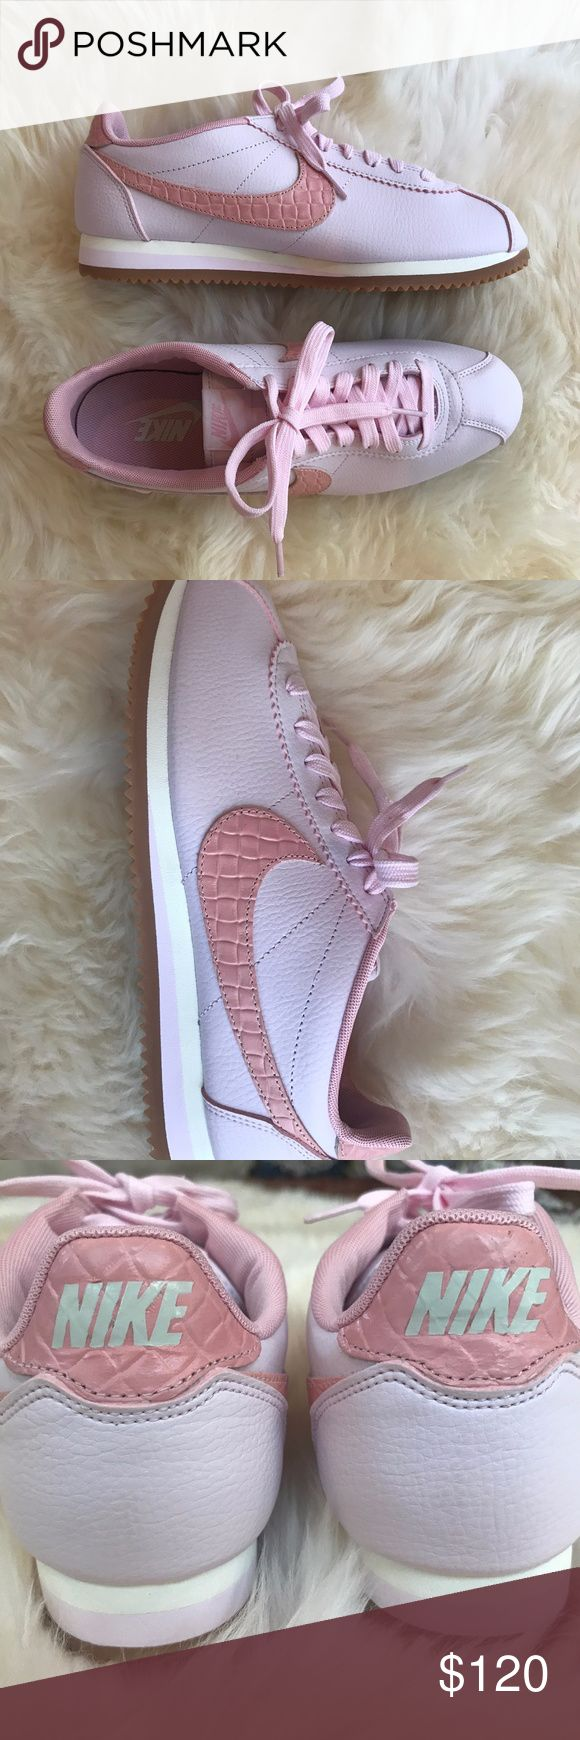 Nike Cortez Leather Lux in Pearl Pink Snail Gum These classic Nike Cortez sneakers feature fun pink and nude colors (pearl/pink/medium brown/pink snail) with a brown gum sole and a leather Nike check on both sides. Extremely comfortable with a nice padded insole for the perfect everyday sneaker!  Completely sold out in the United States, BRAND NEW, and never worn with original packaging! Nike Shoes Sneakers